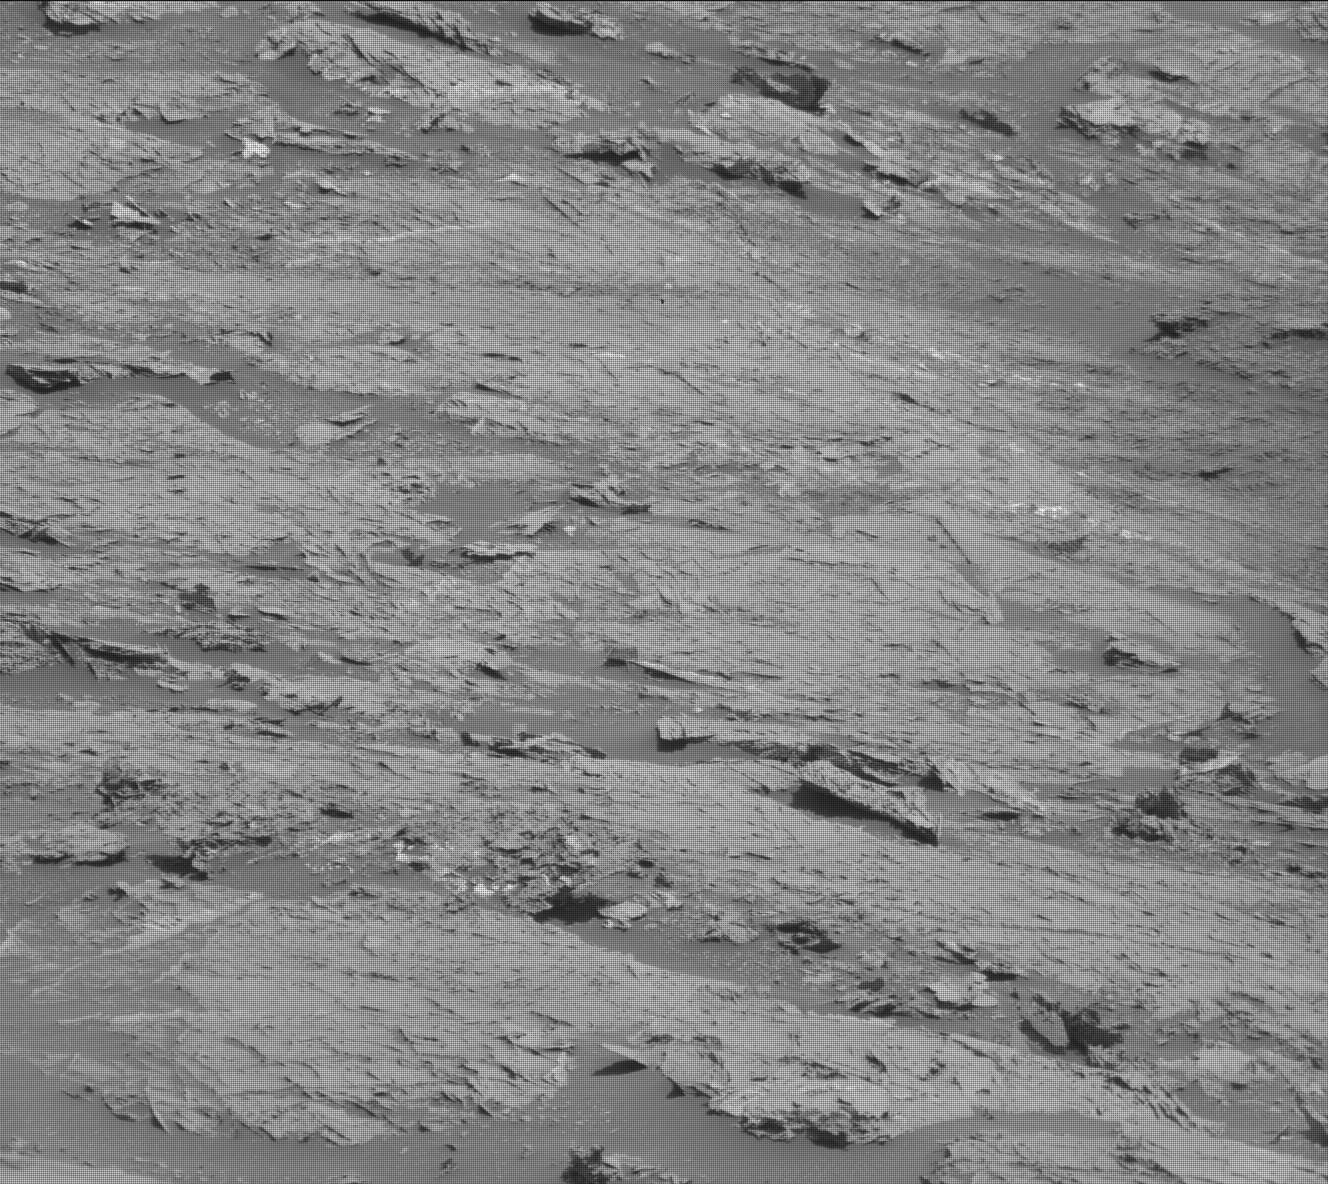 Nasa's Mars rover Curiosity acquired this image using its Mast Camera (Mastcam) on Sol 3103